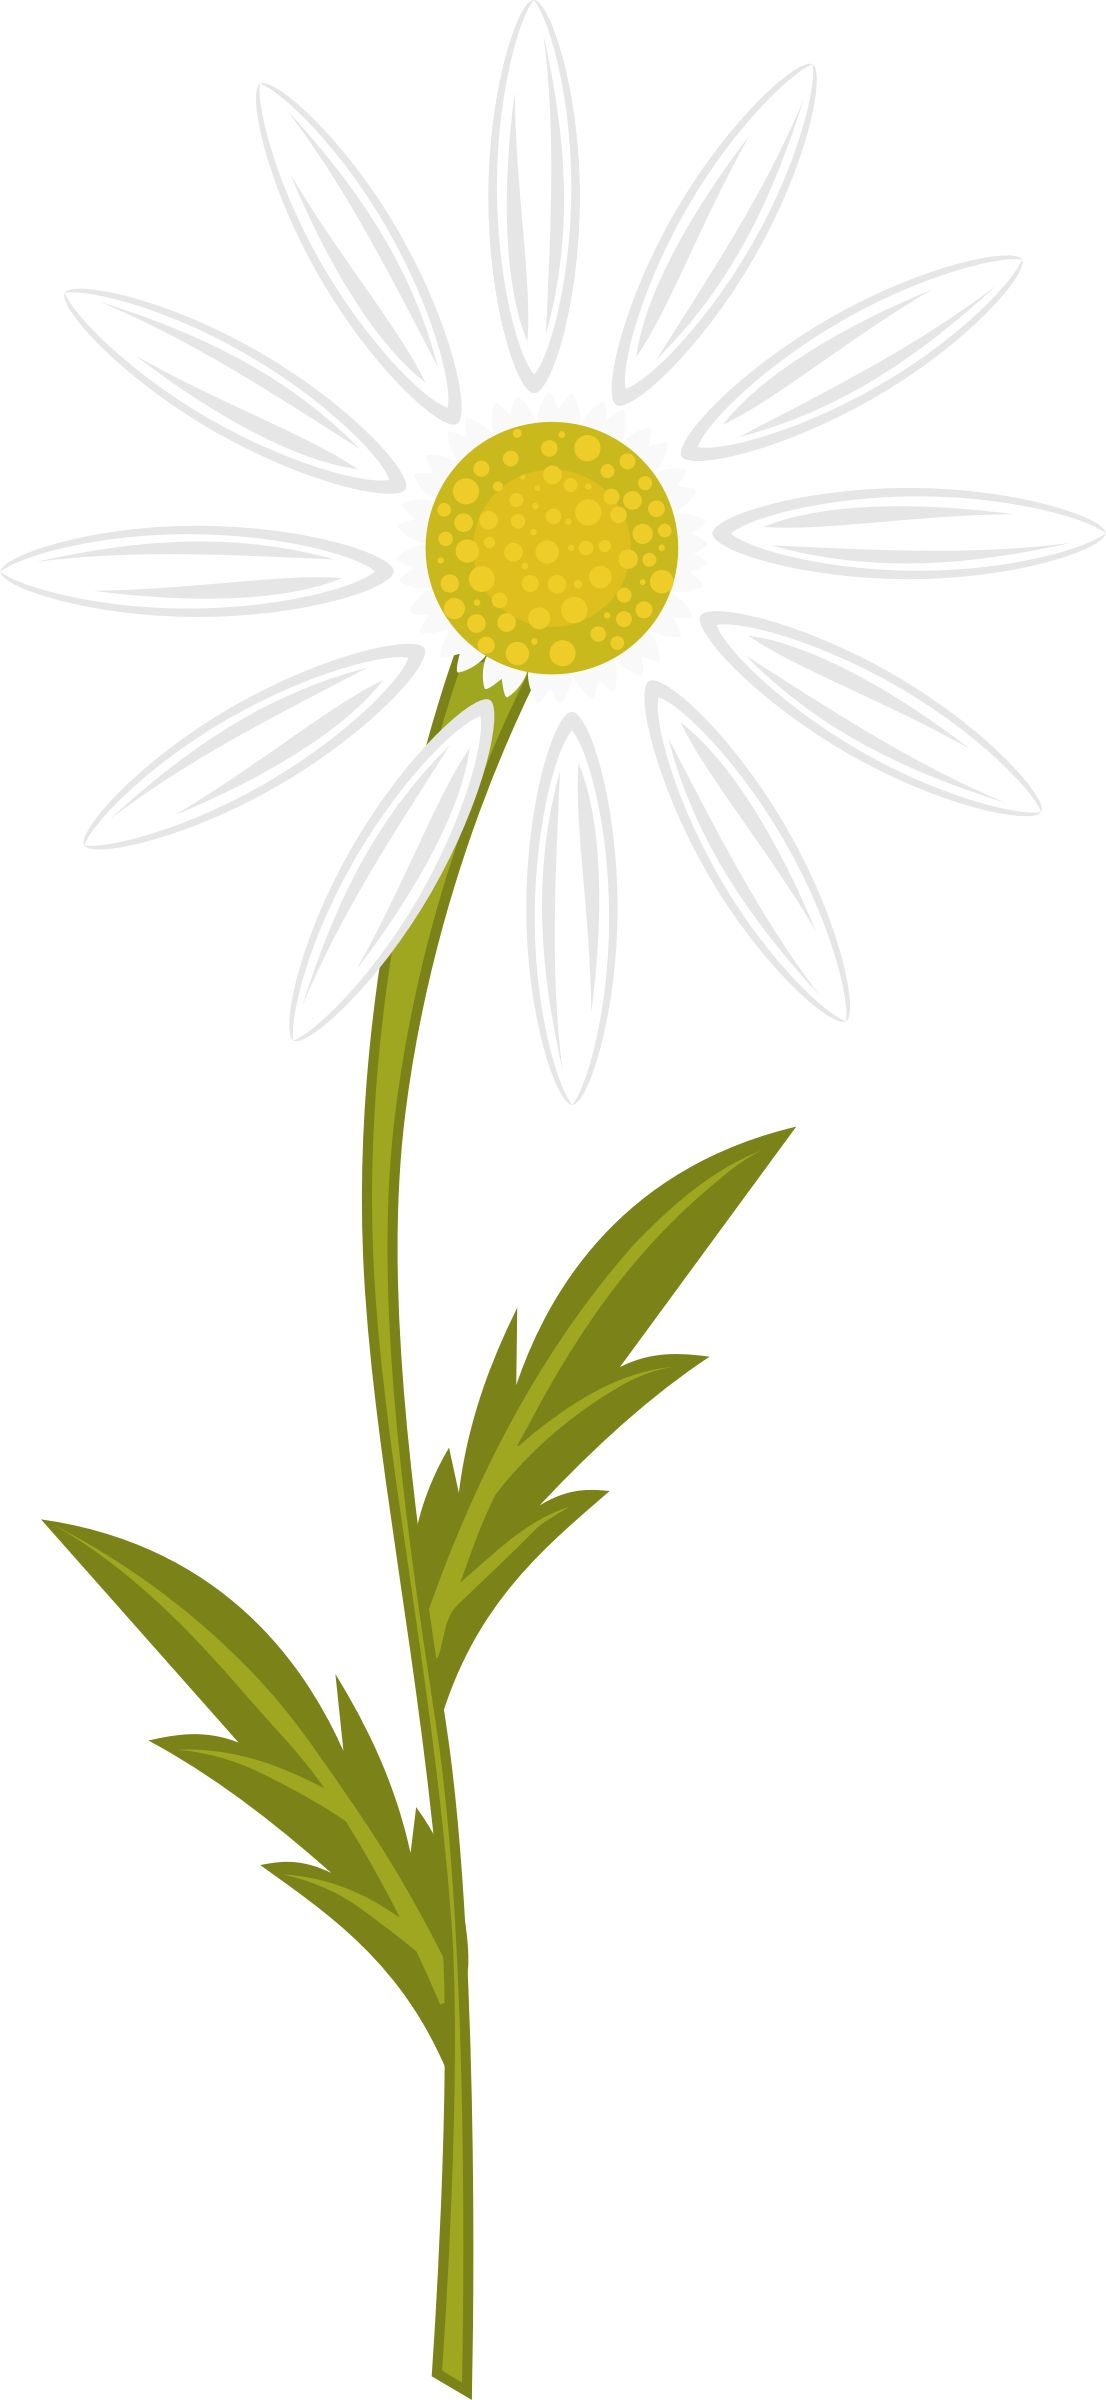 Camomile svg #15, Download drawings